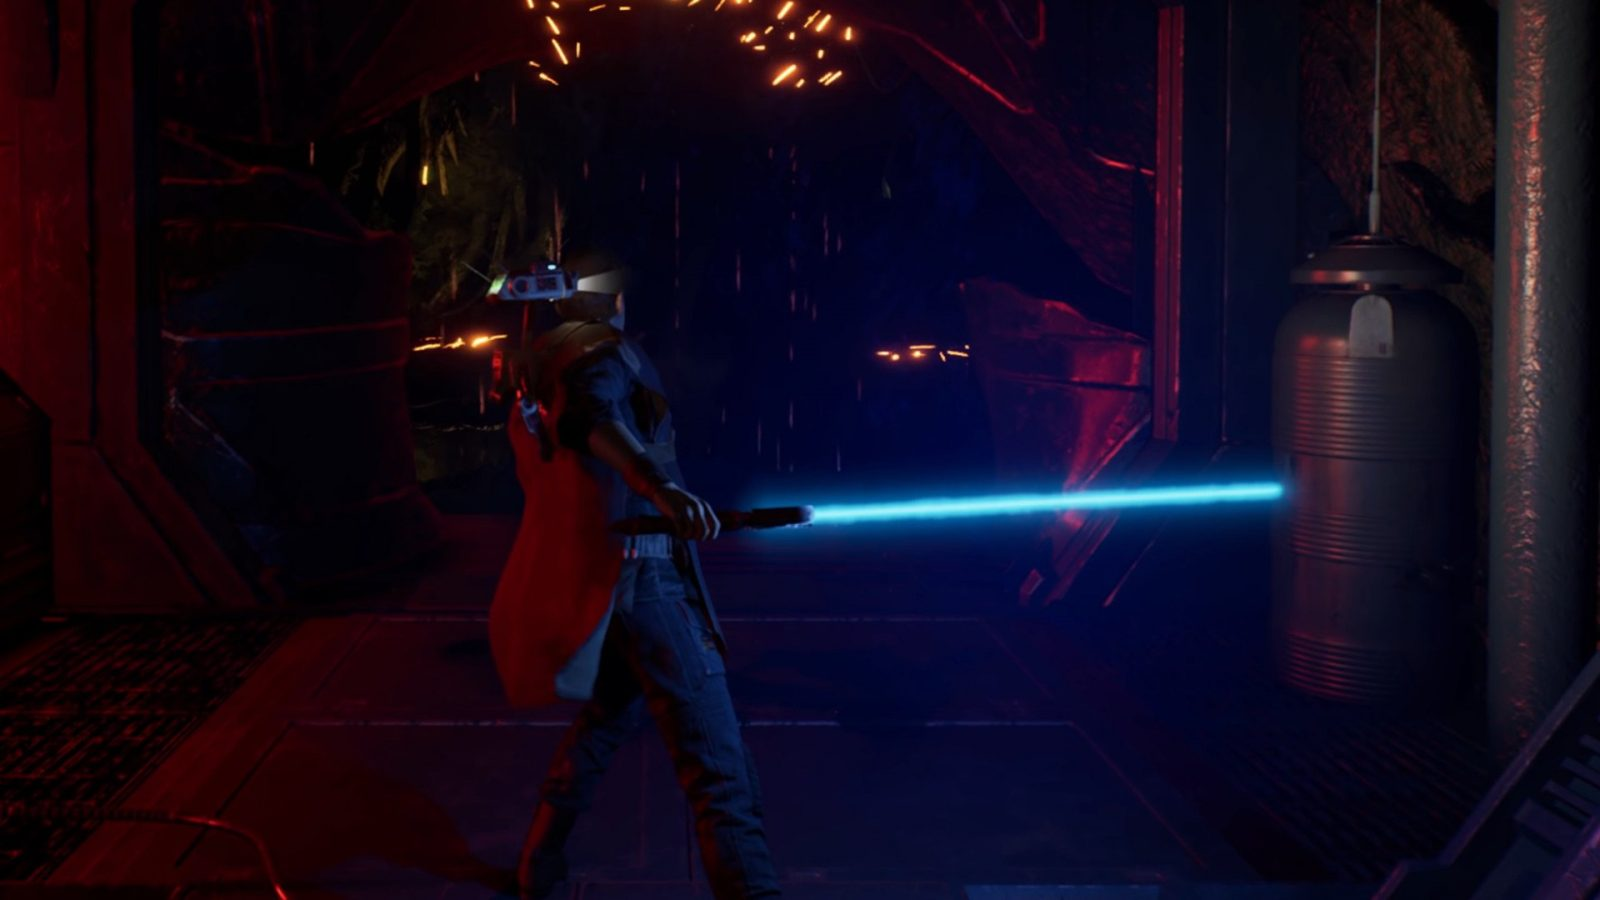 Jedi Fallen Order Lightsaber is Changing, Brought in Line with Other Depictions